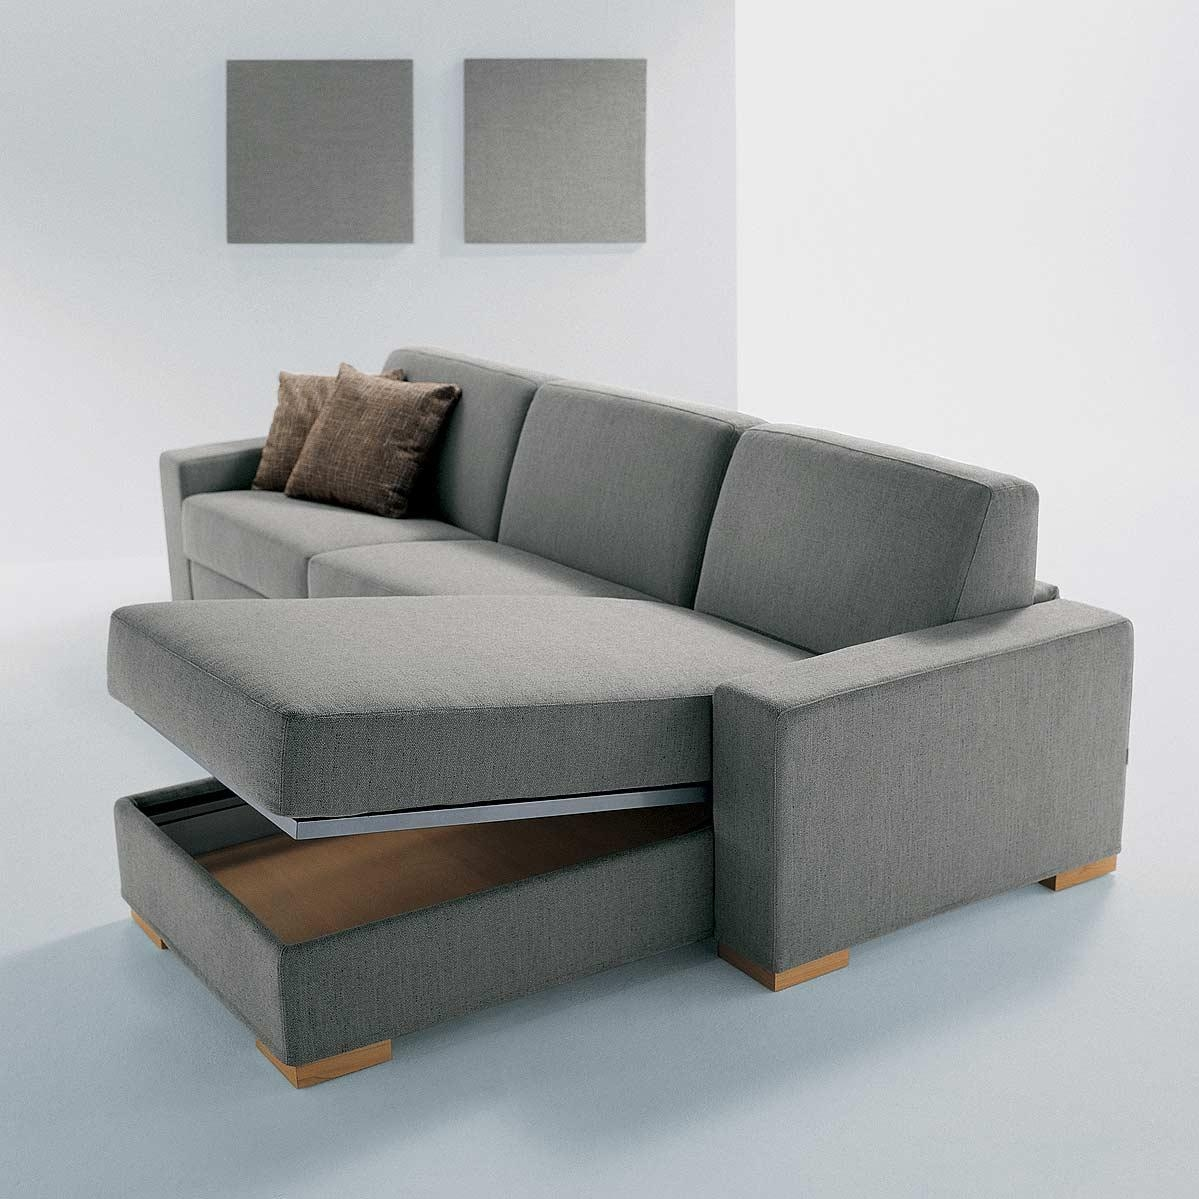 Convertible Sofa Bed With Storage – S3Net – Sectional Sofas Sale With Regard To Sectional Sofa Bed With Storage (Image 4 of 20)